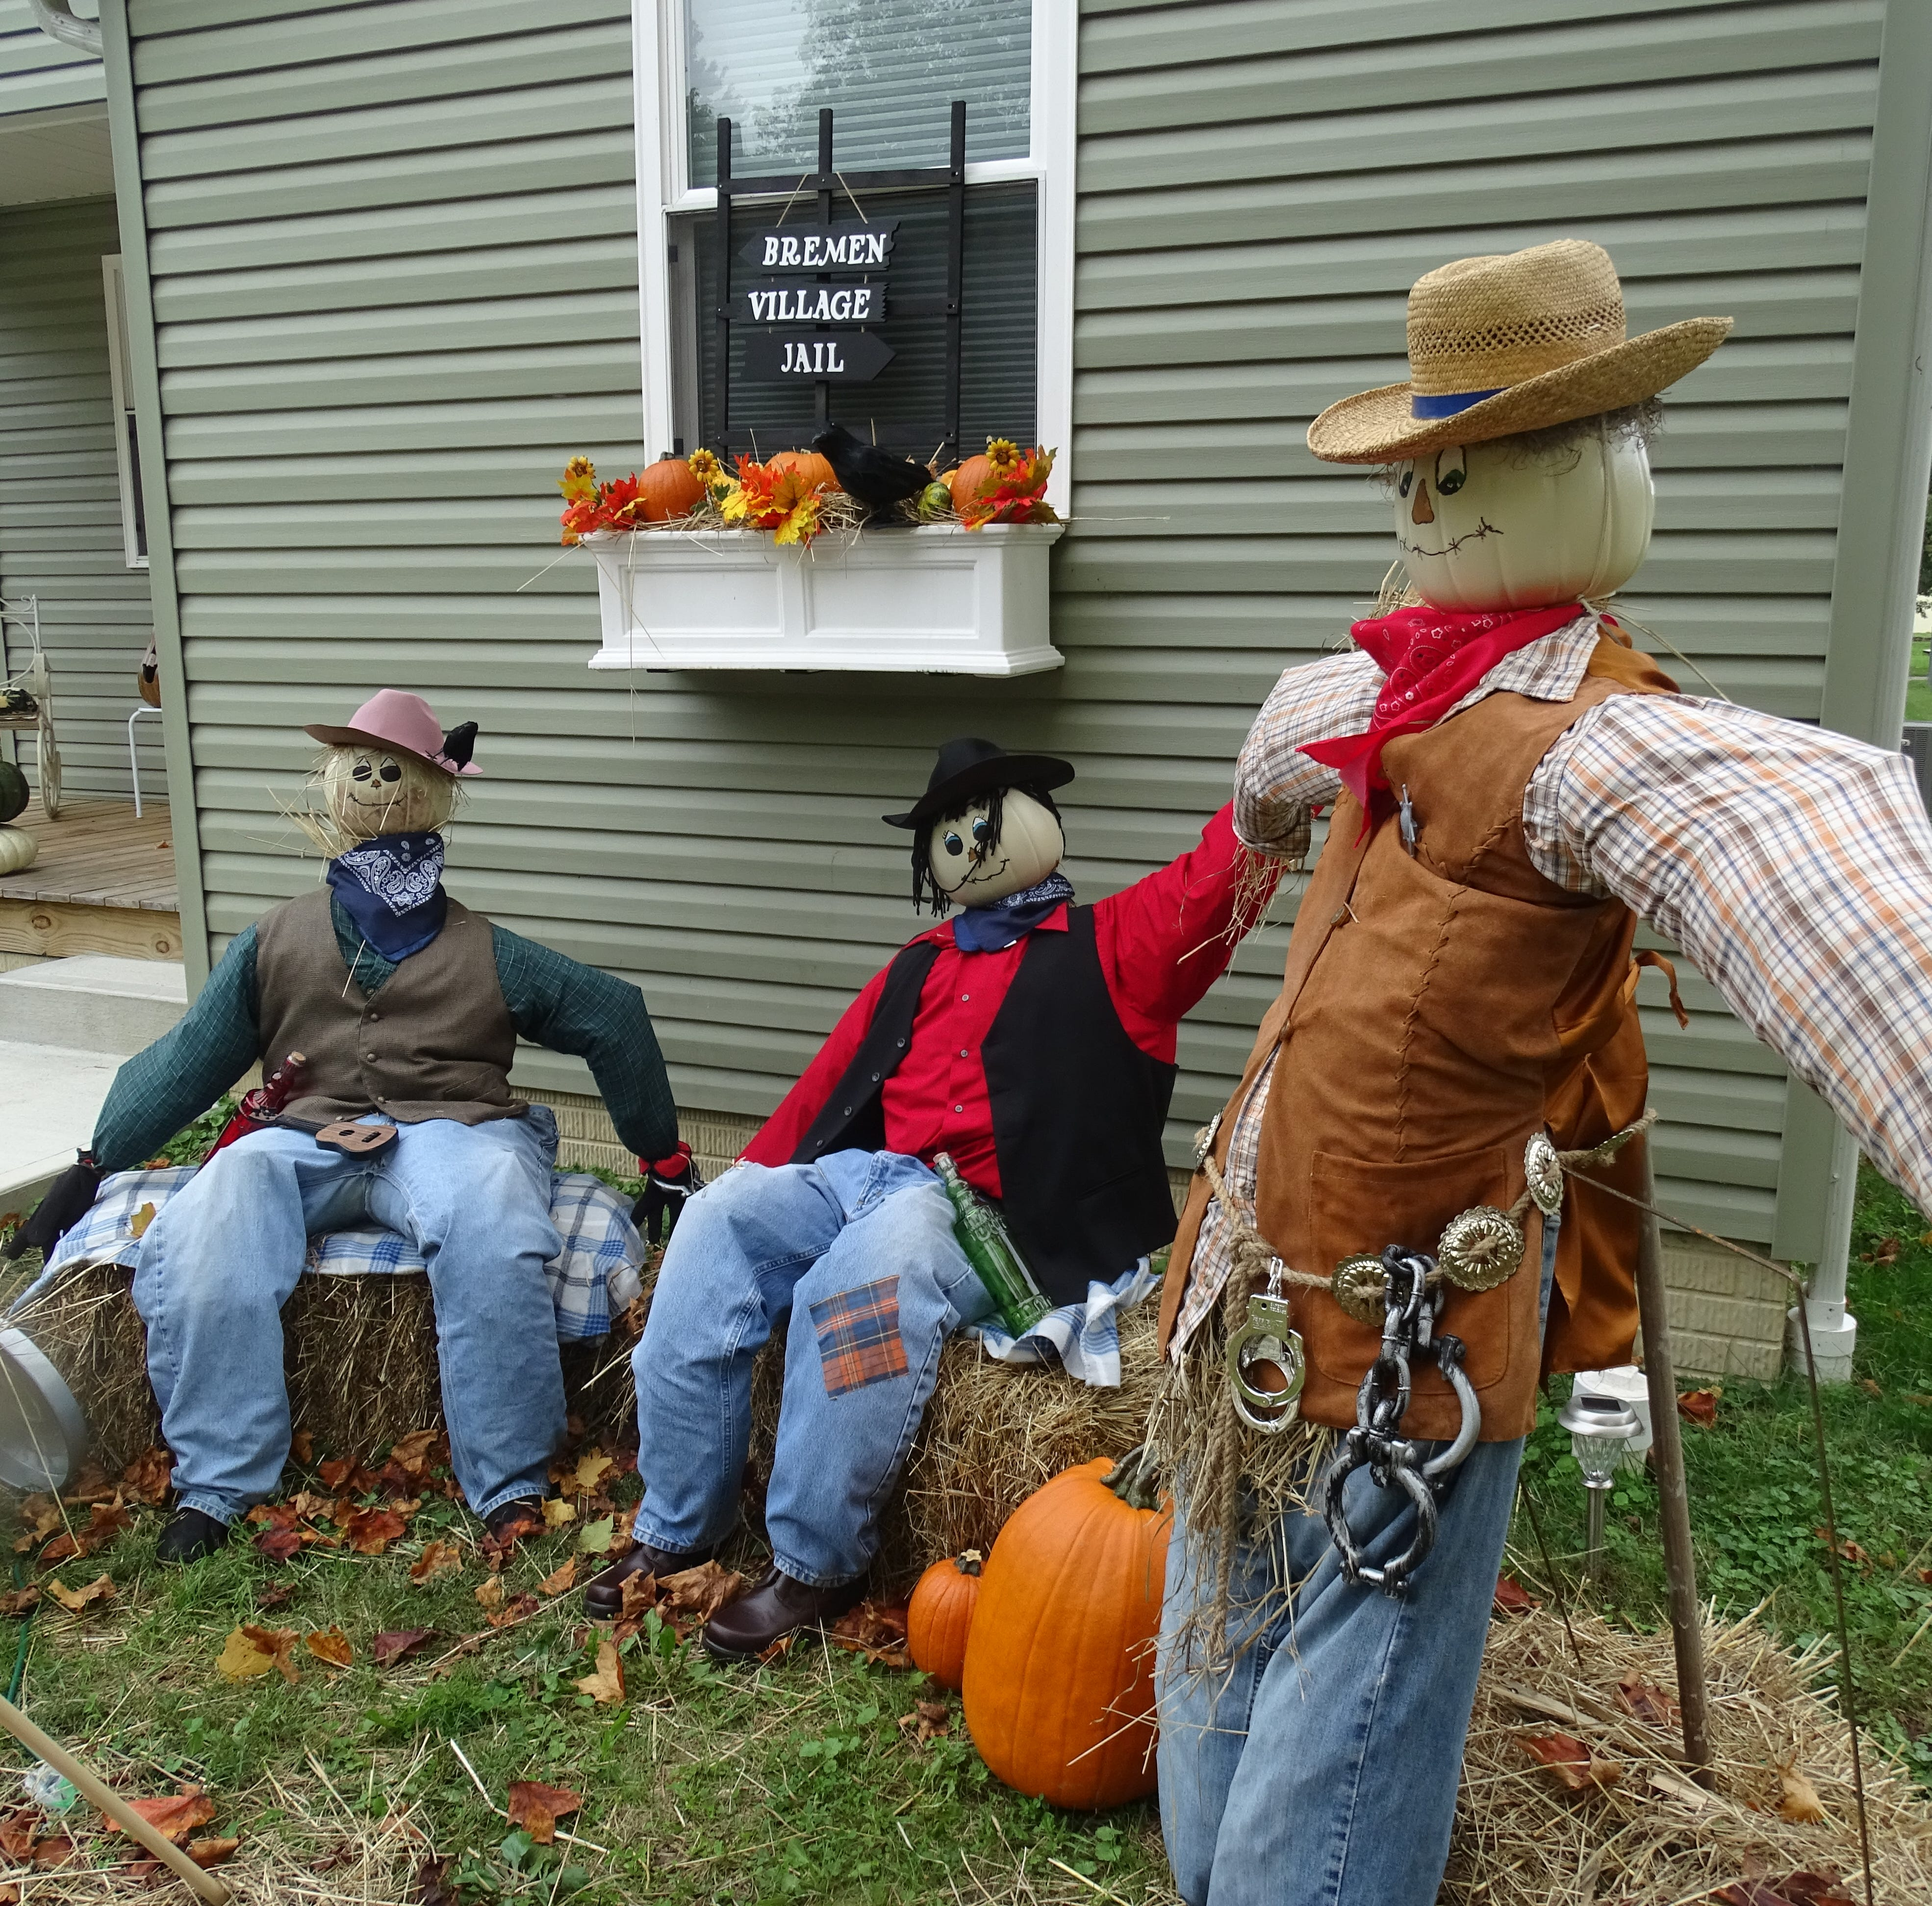 Hoping to draw others to see Bremen, local Chamber scares up new Halloween tradition